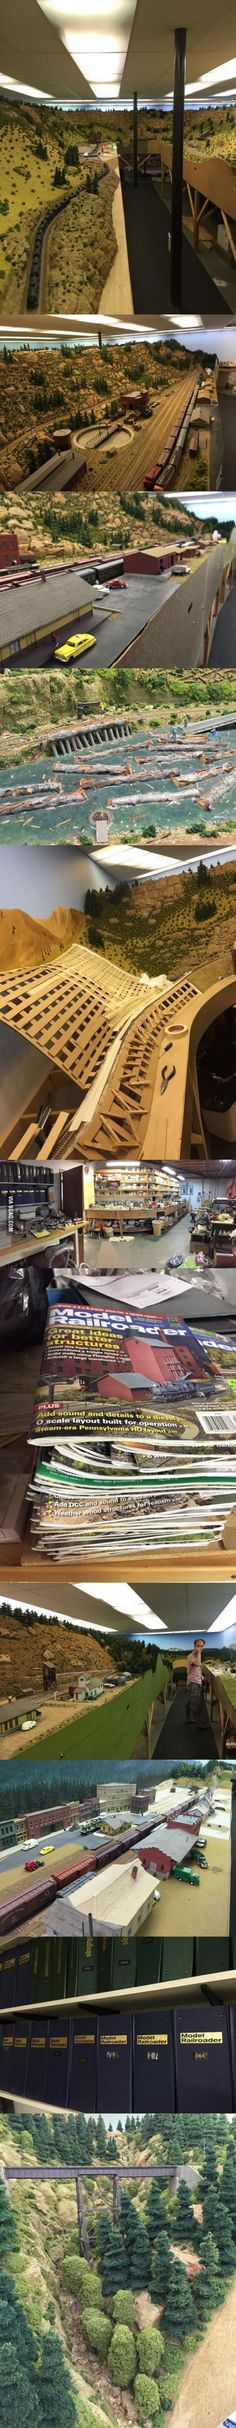 A grandfather turned his basement into a working model railroad